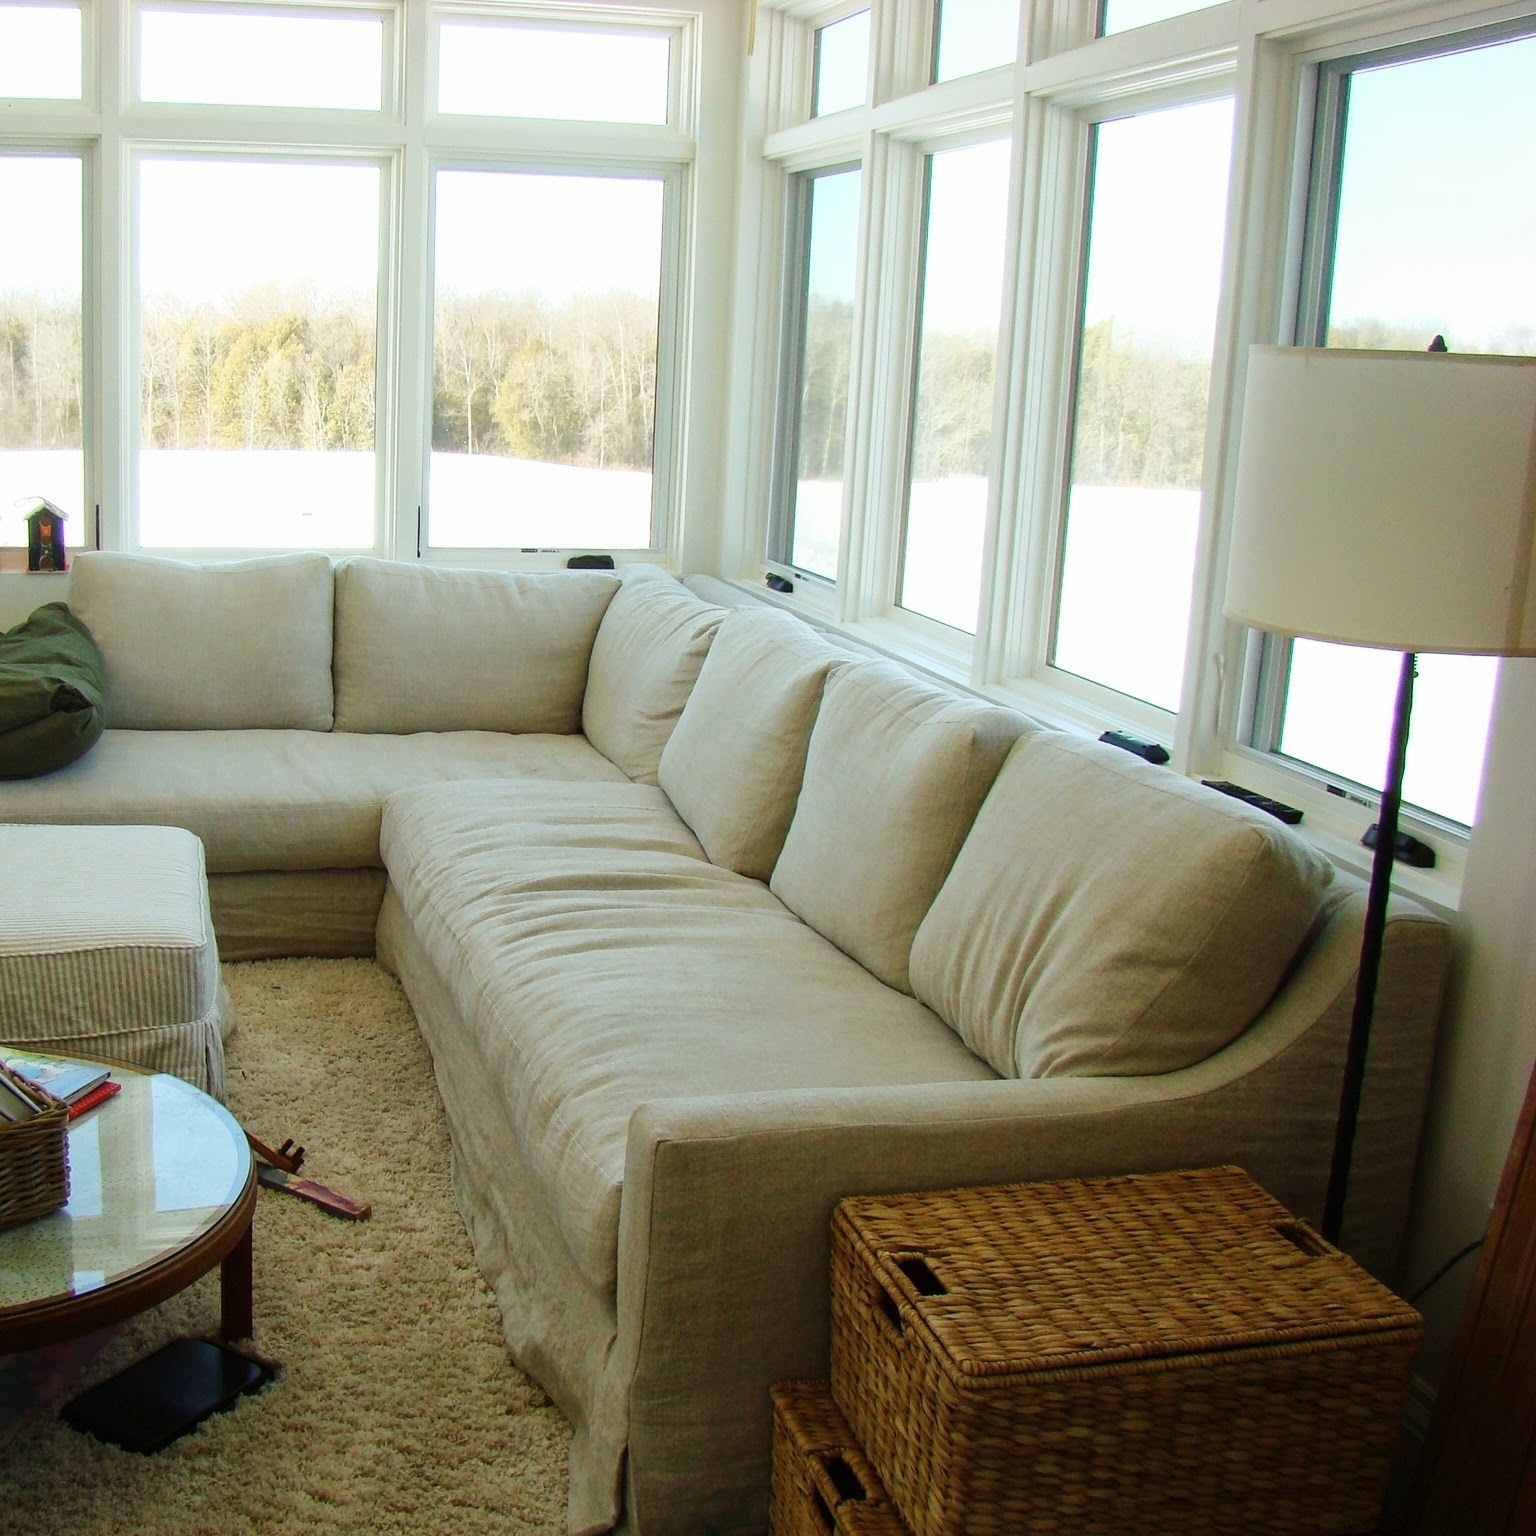 Restoration Hardware Sectional Sofas With Regard To Popular Building Walnut Farm: Belgian Linen Slipcovered Furniture (View 9 of 15)